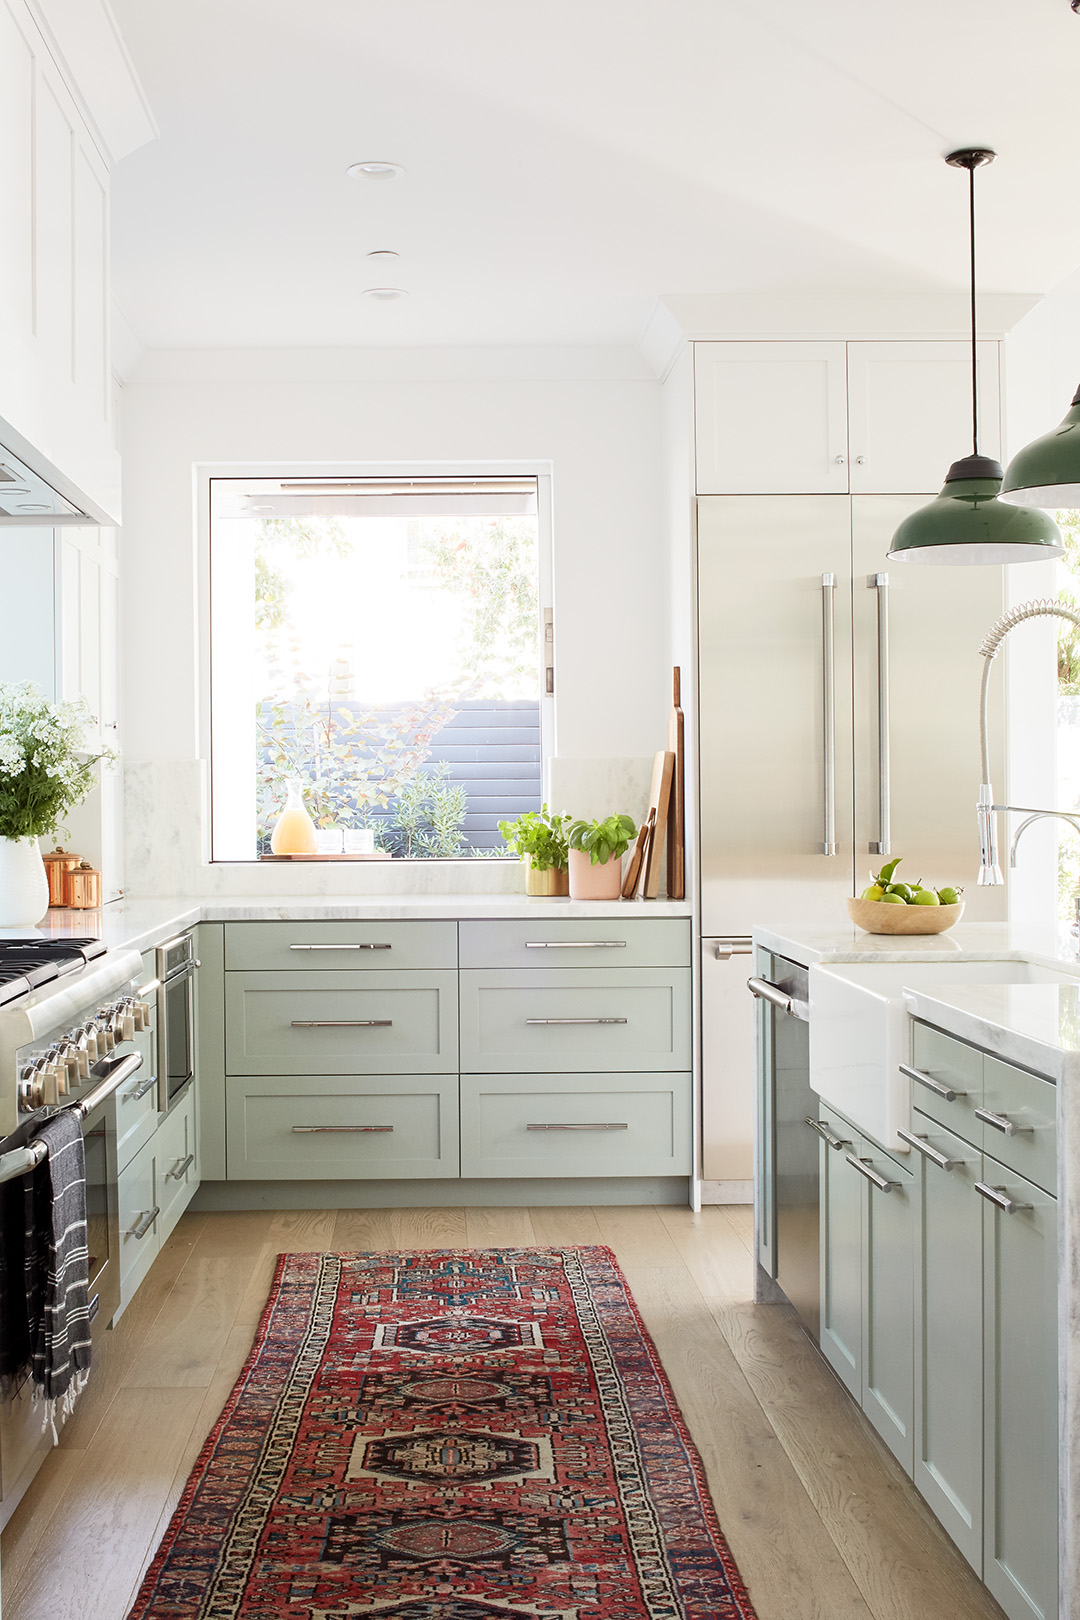 Persian Rugs are the Latest Kitchen Trend | Better Homes ...